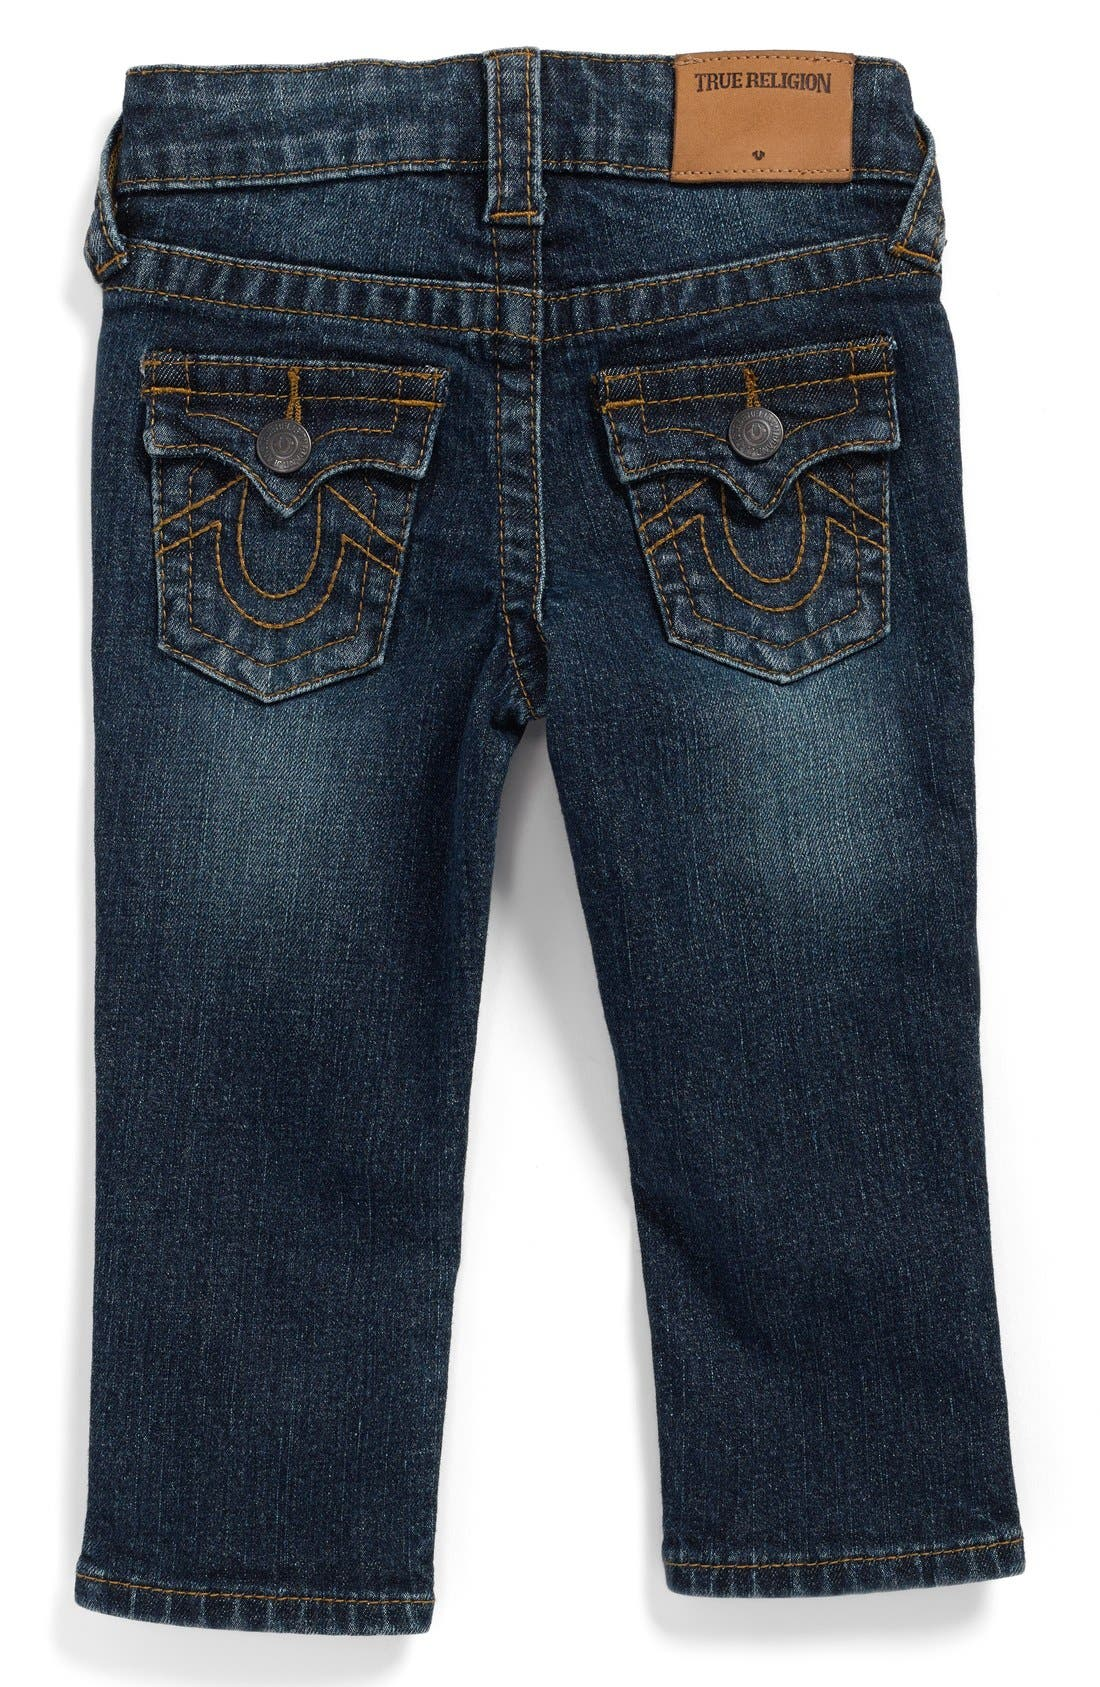 Alternate Image 2  - True Religion Brand Jeans 'Geno' Relaxed Slim Fit Classic Jeans (Baby Boys) (Online Exclusive)